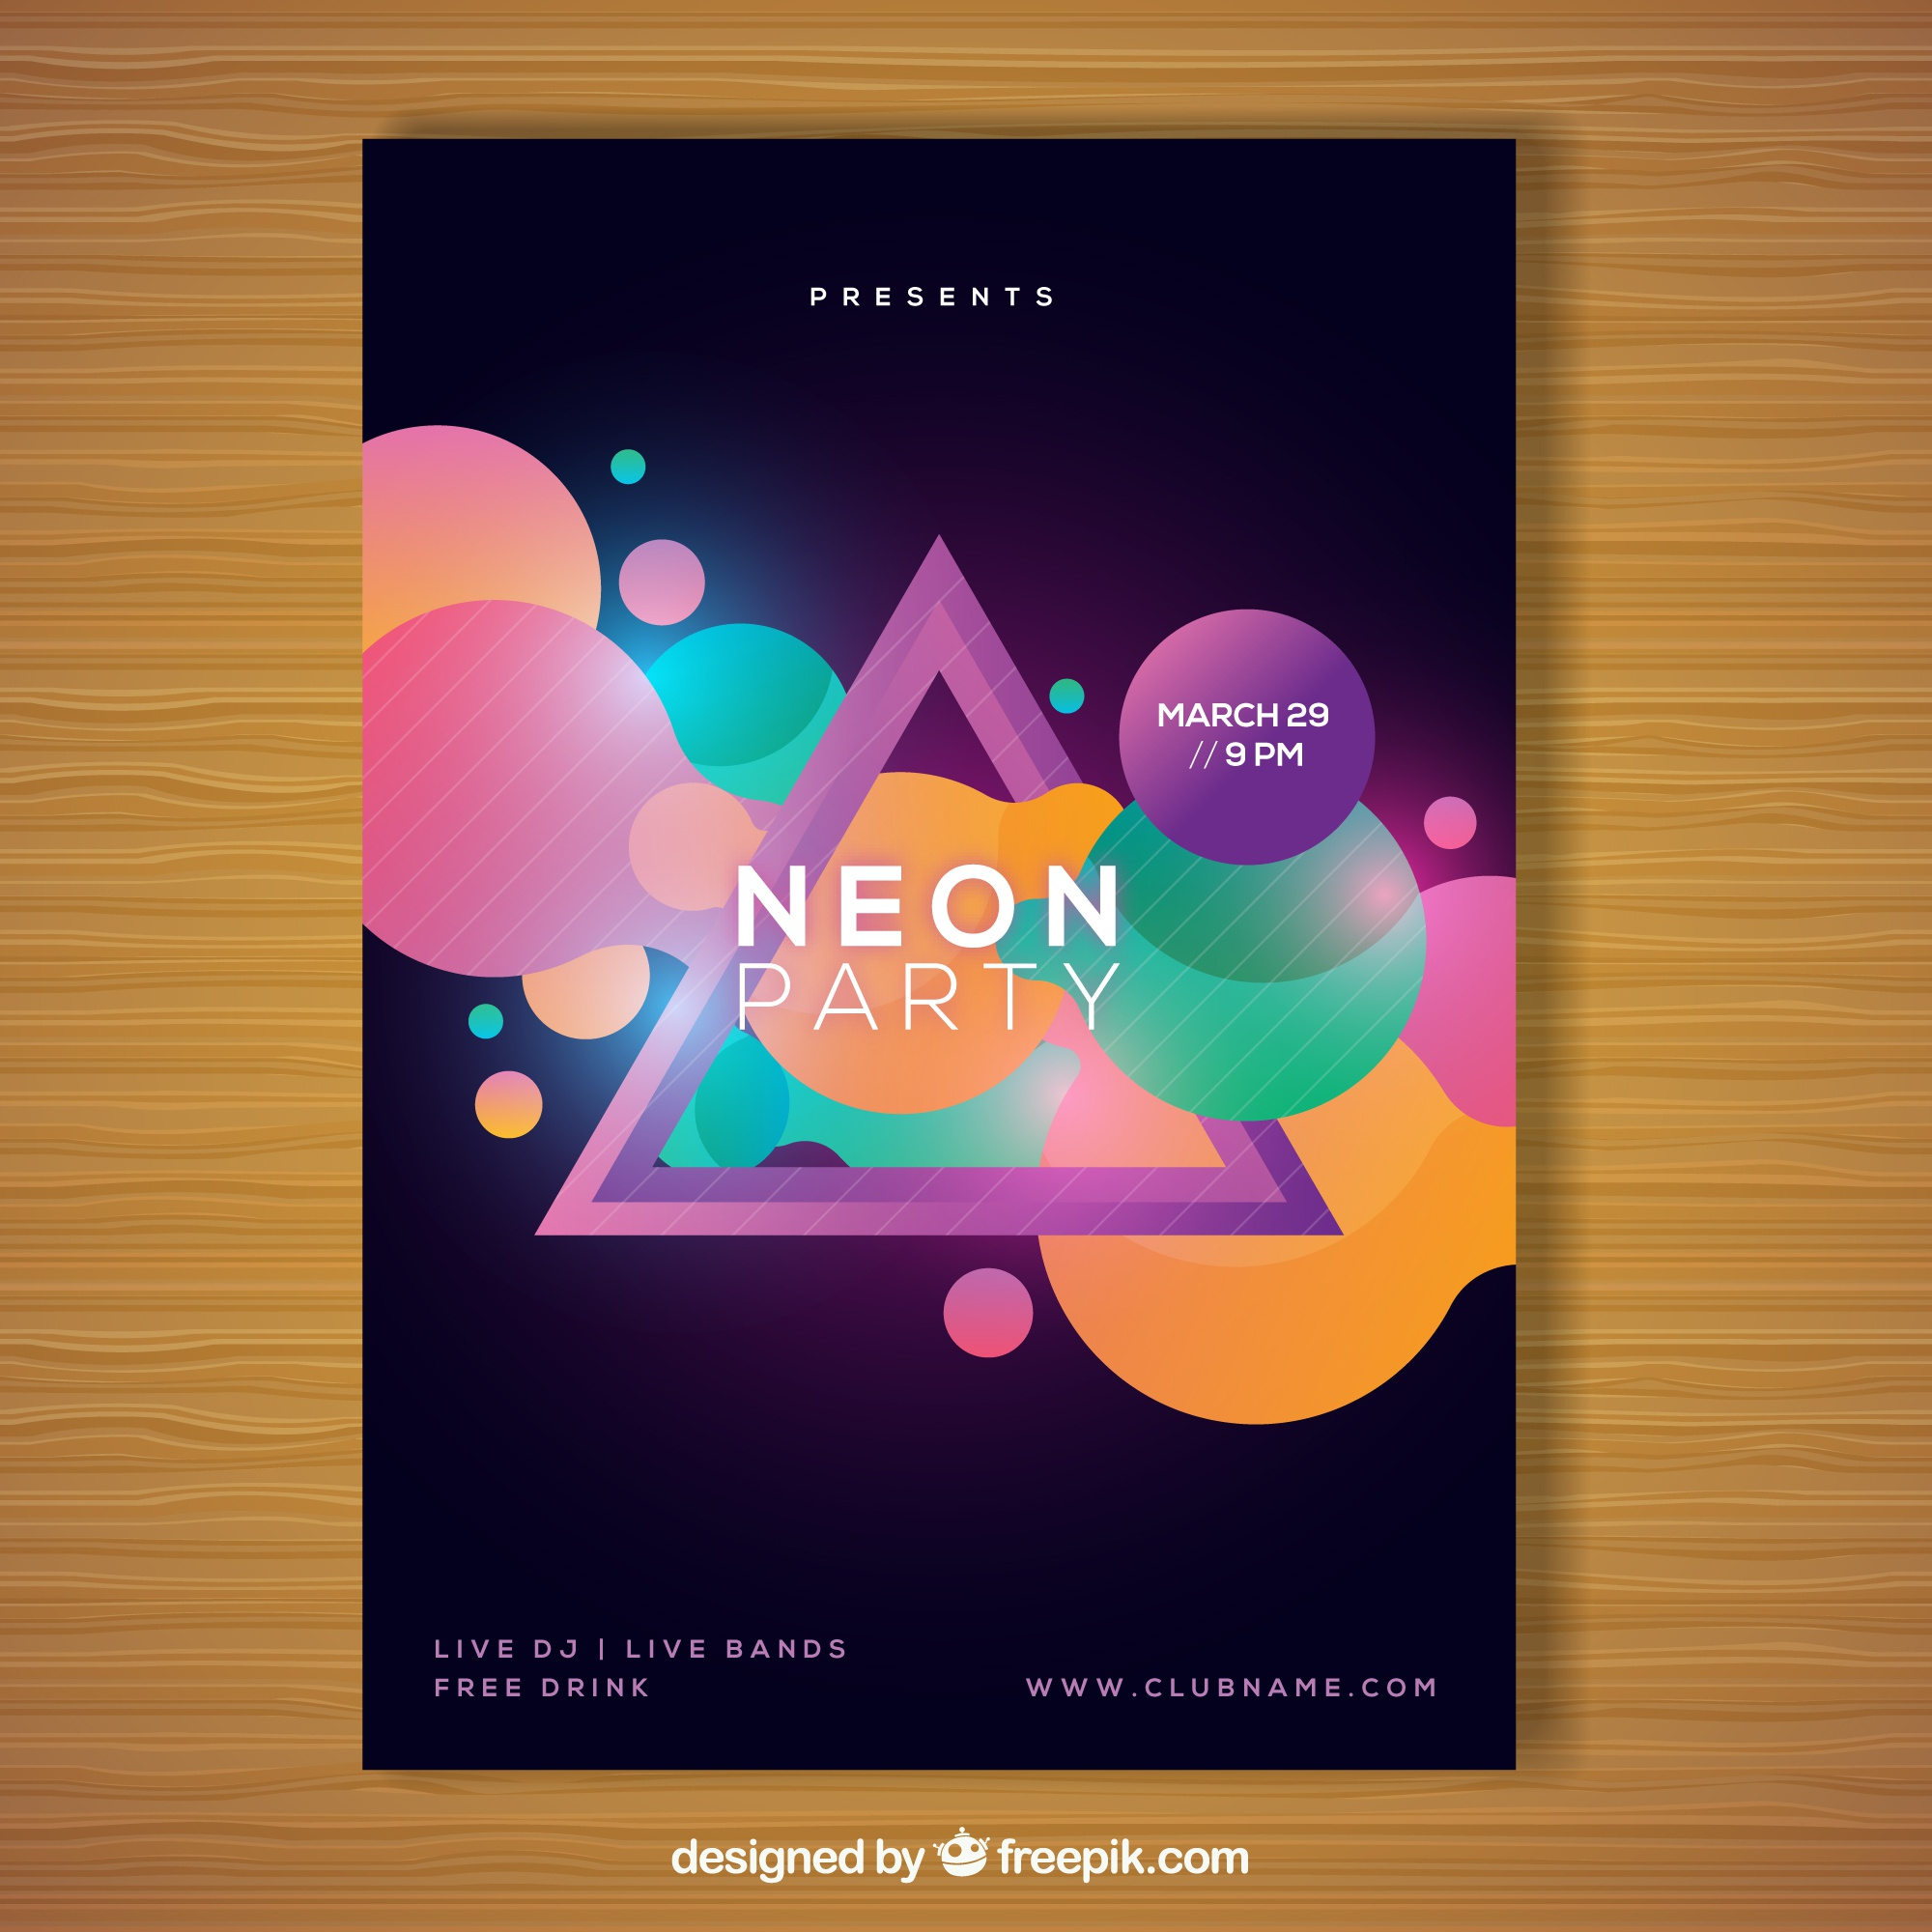 Geometric party poster with neon style